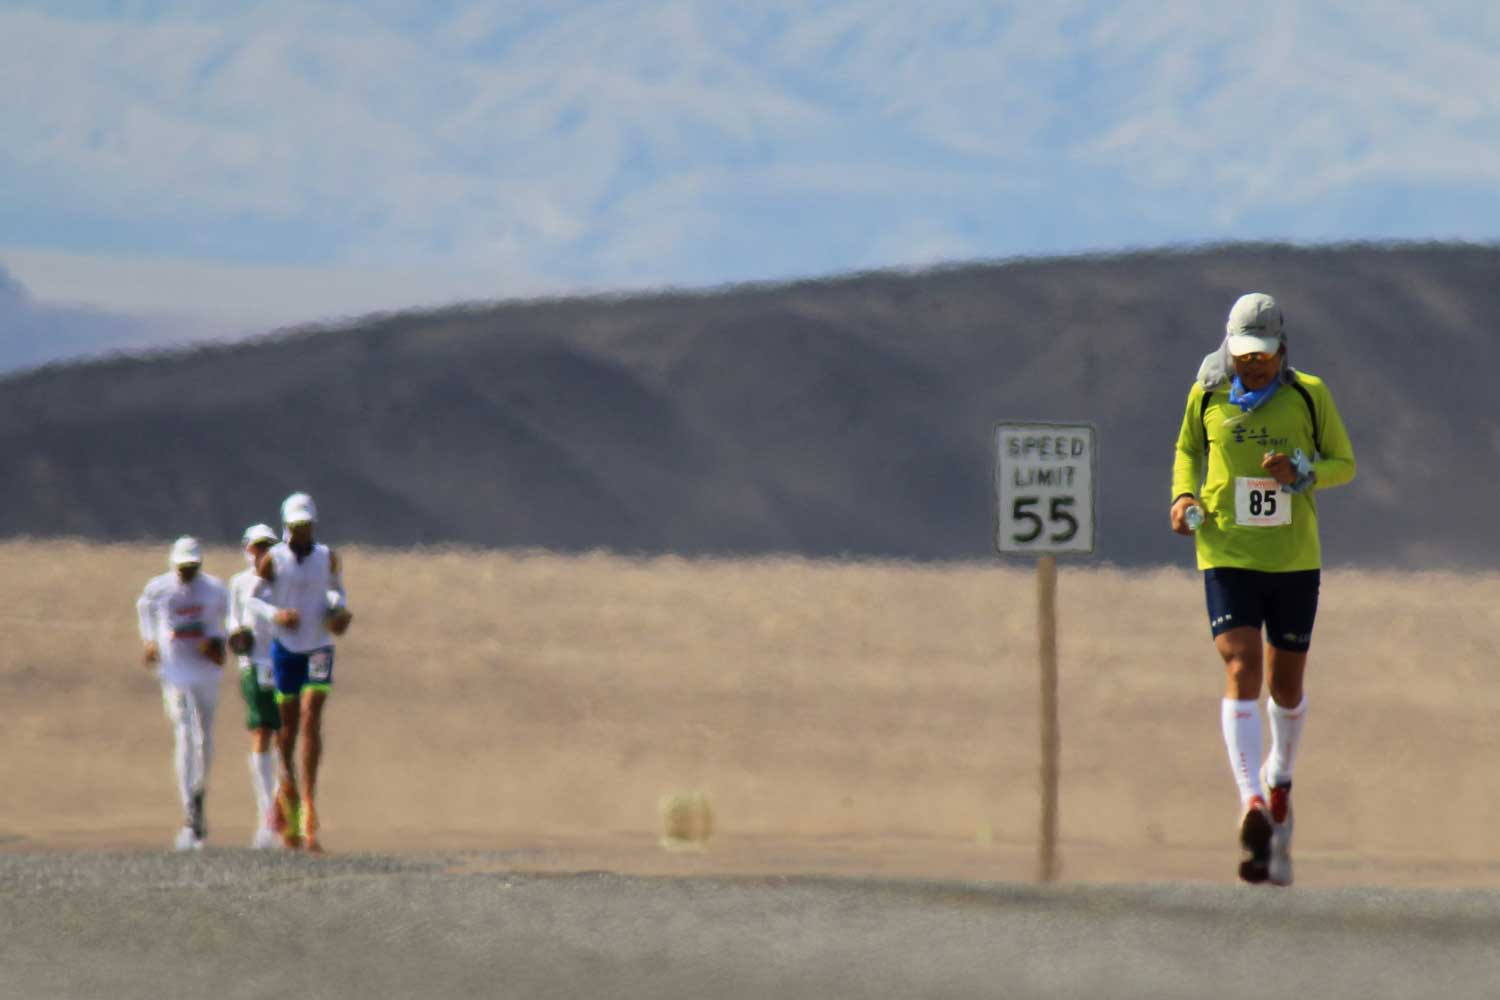 Runners trekking through the AdventurCORPS Badwater 135 ultra-marathon race in Death Valley National Park, California, where average temperatures can reach 116 degrees.